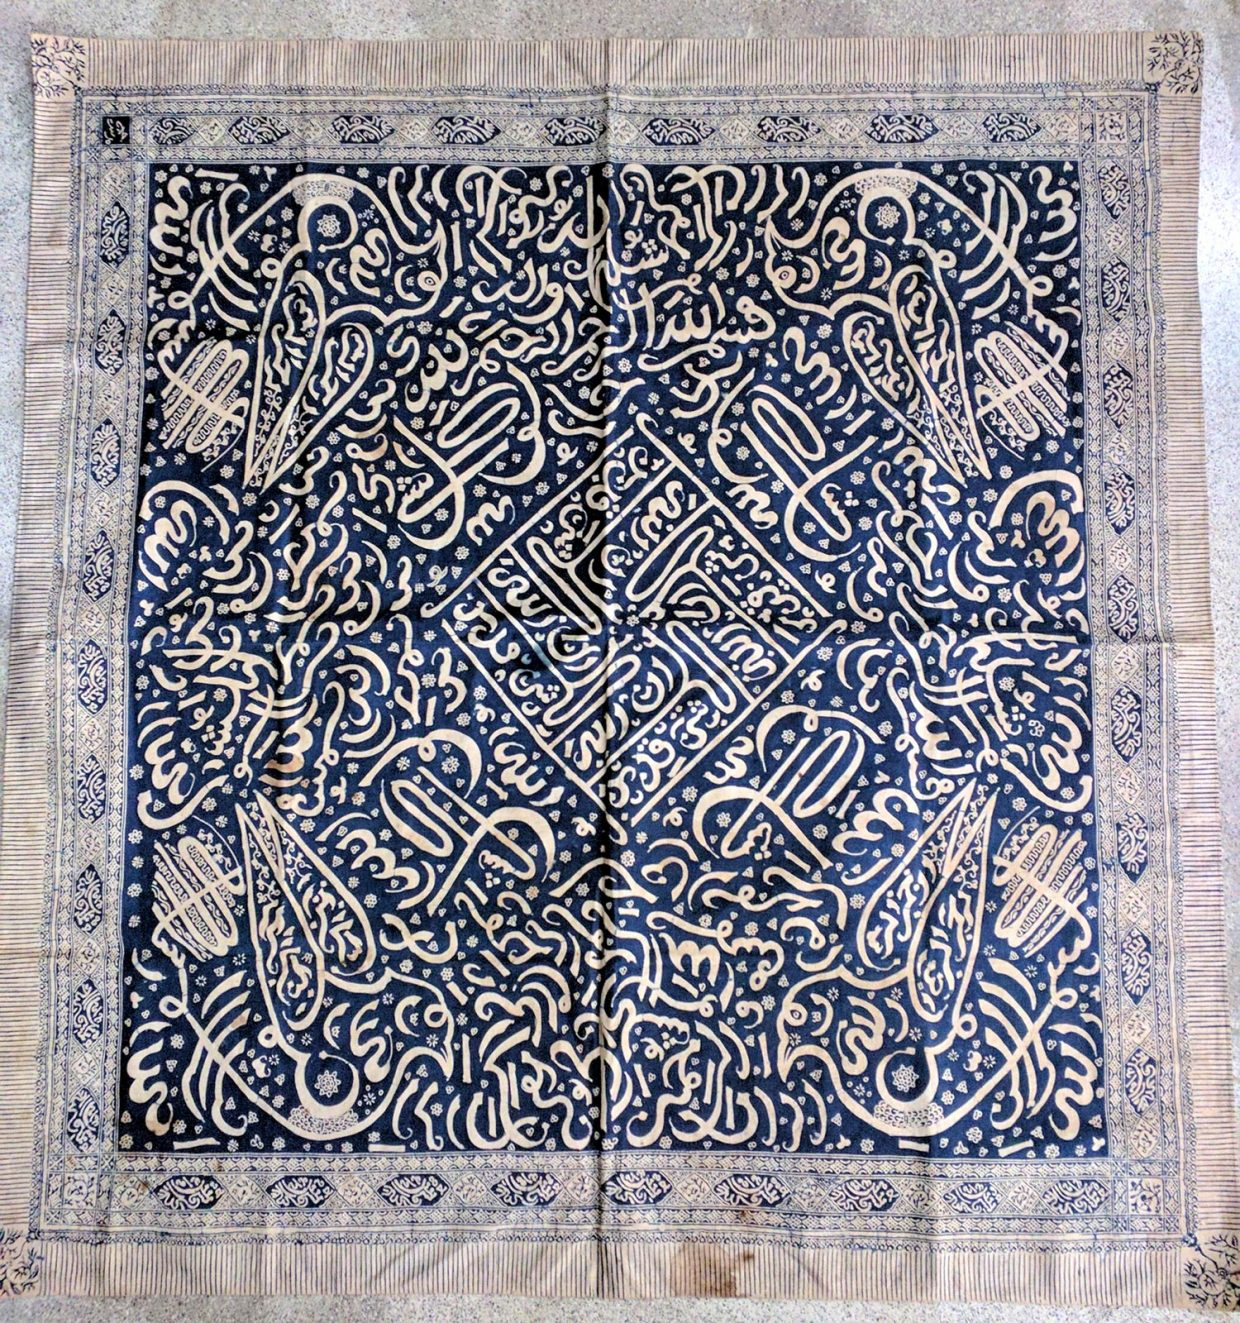 Antique Batik Head Cloth Calligraphy